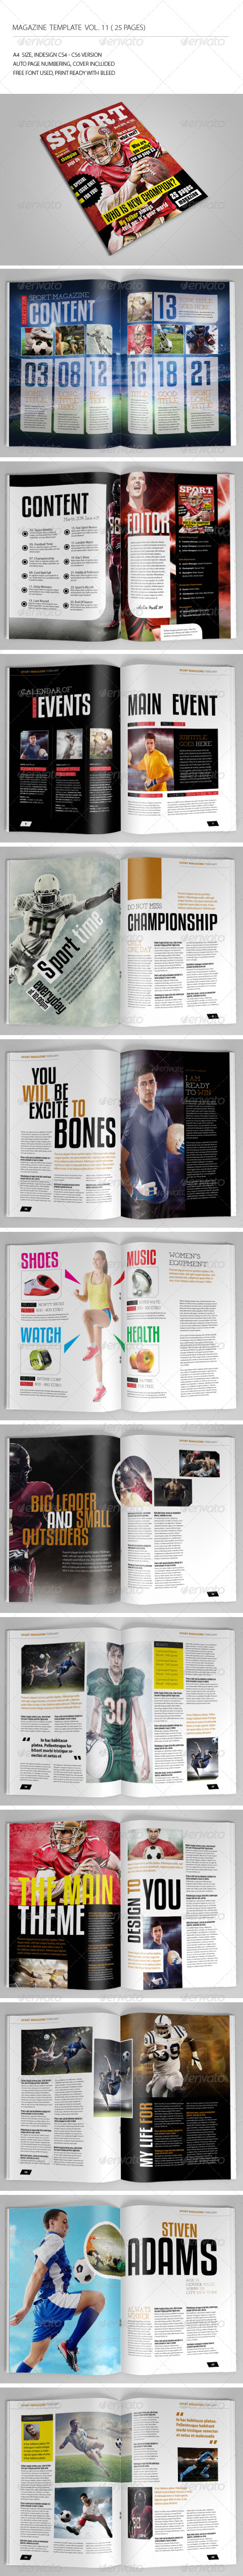 25 Pages Sport Magazine Vol11 - Magazines Print Templates